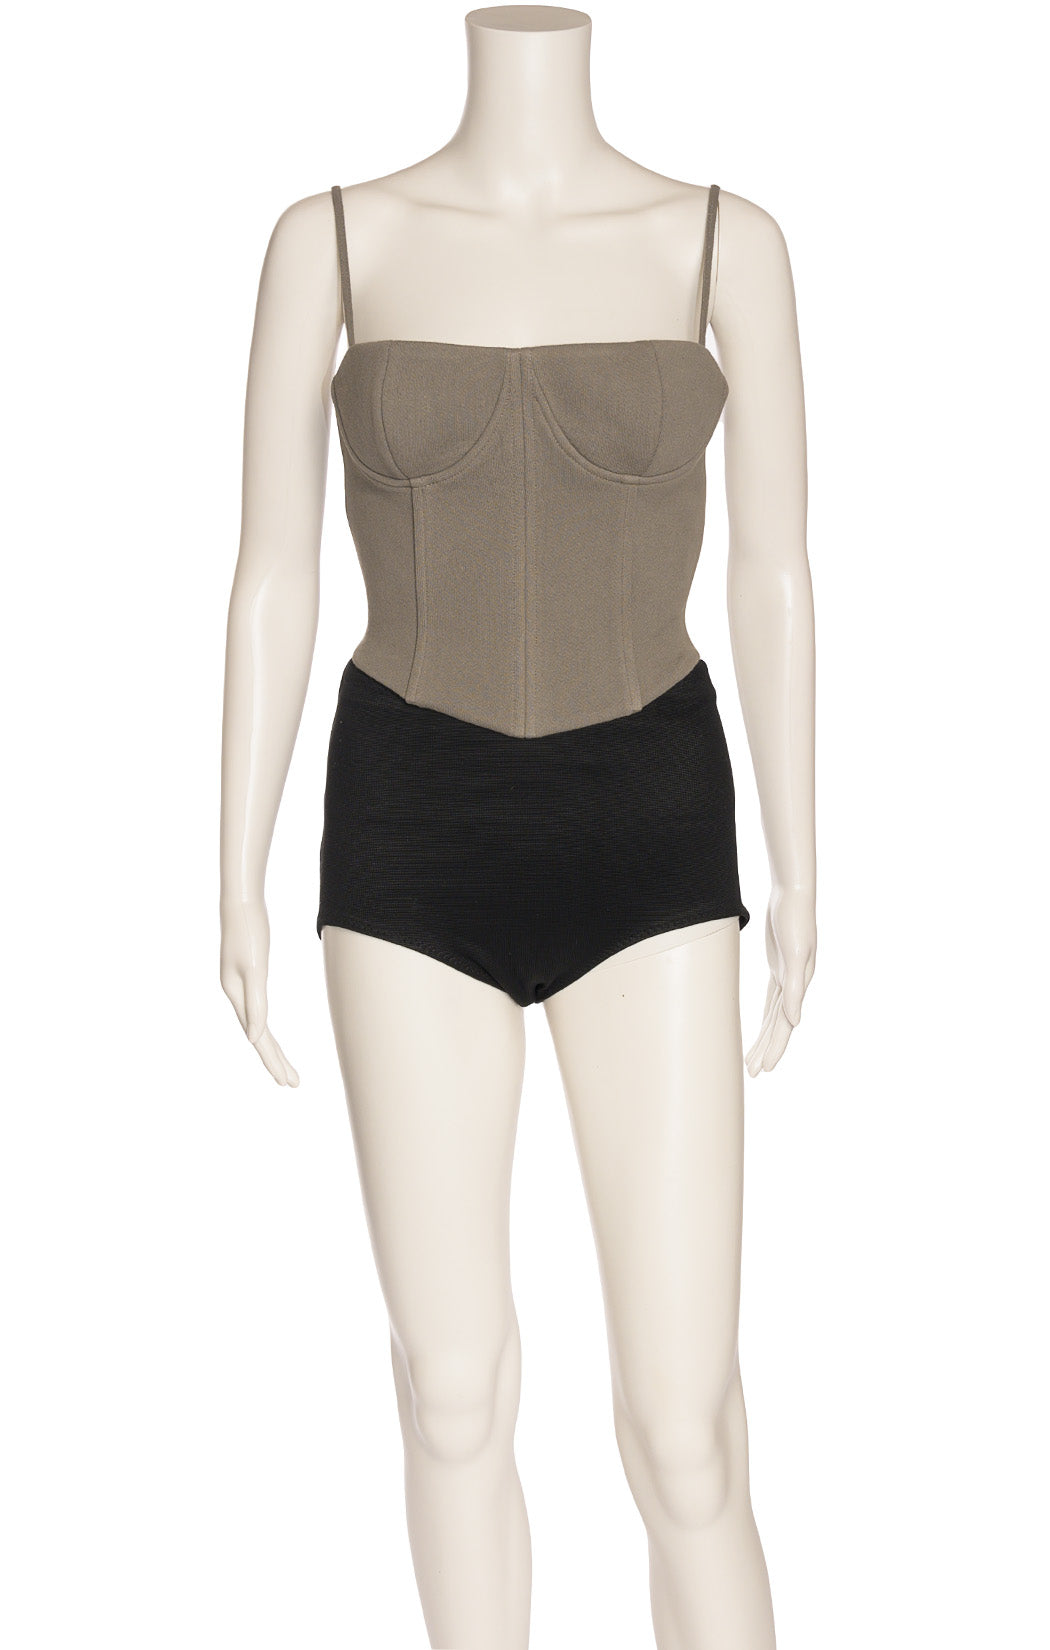 Front view of ARTICA ARBOX Corset/top Size: Small